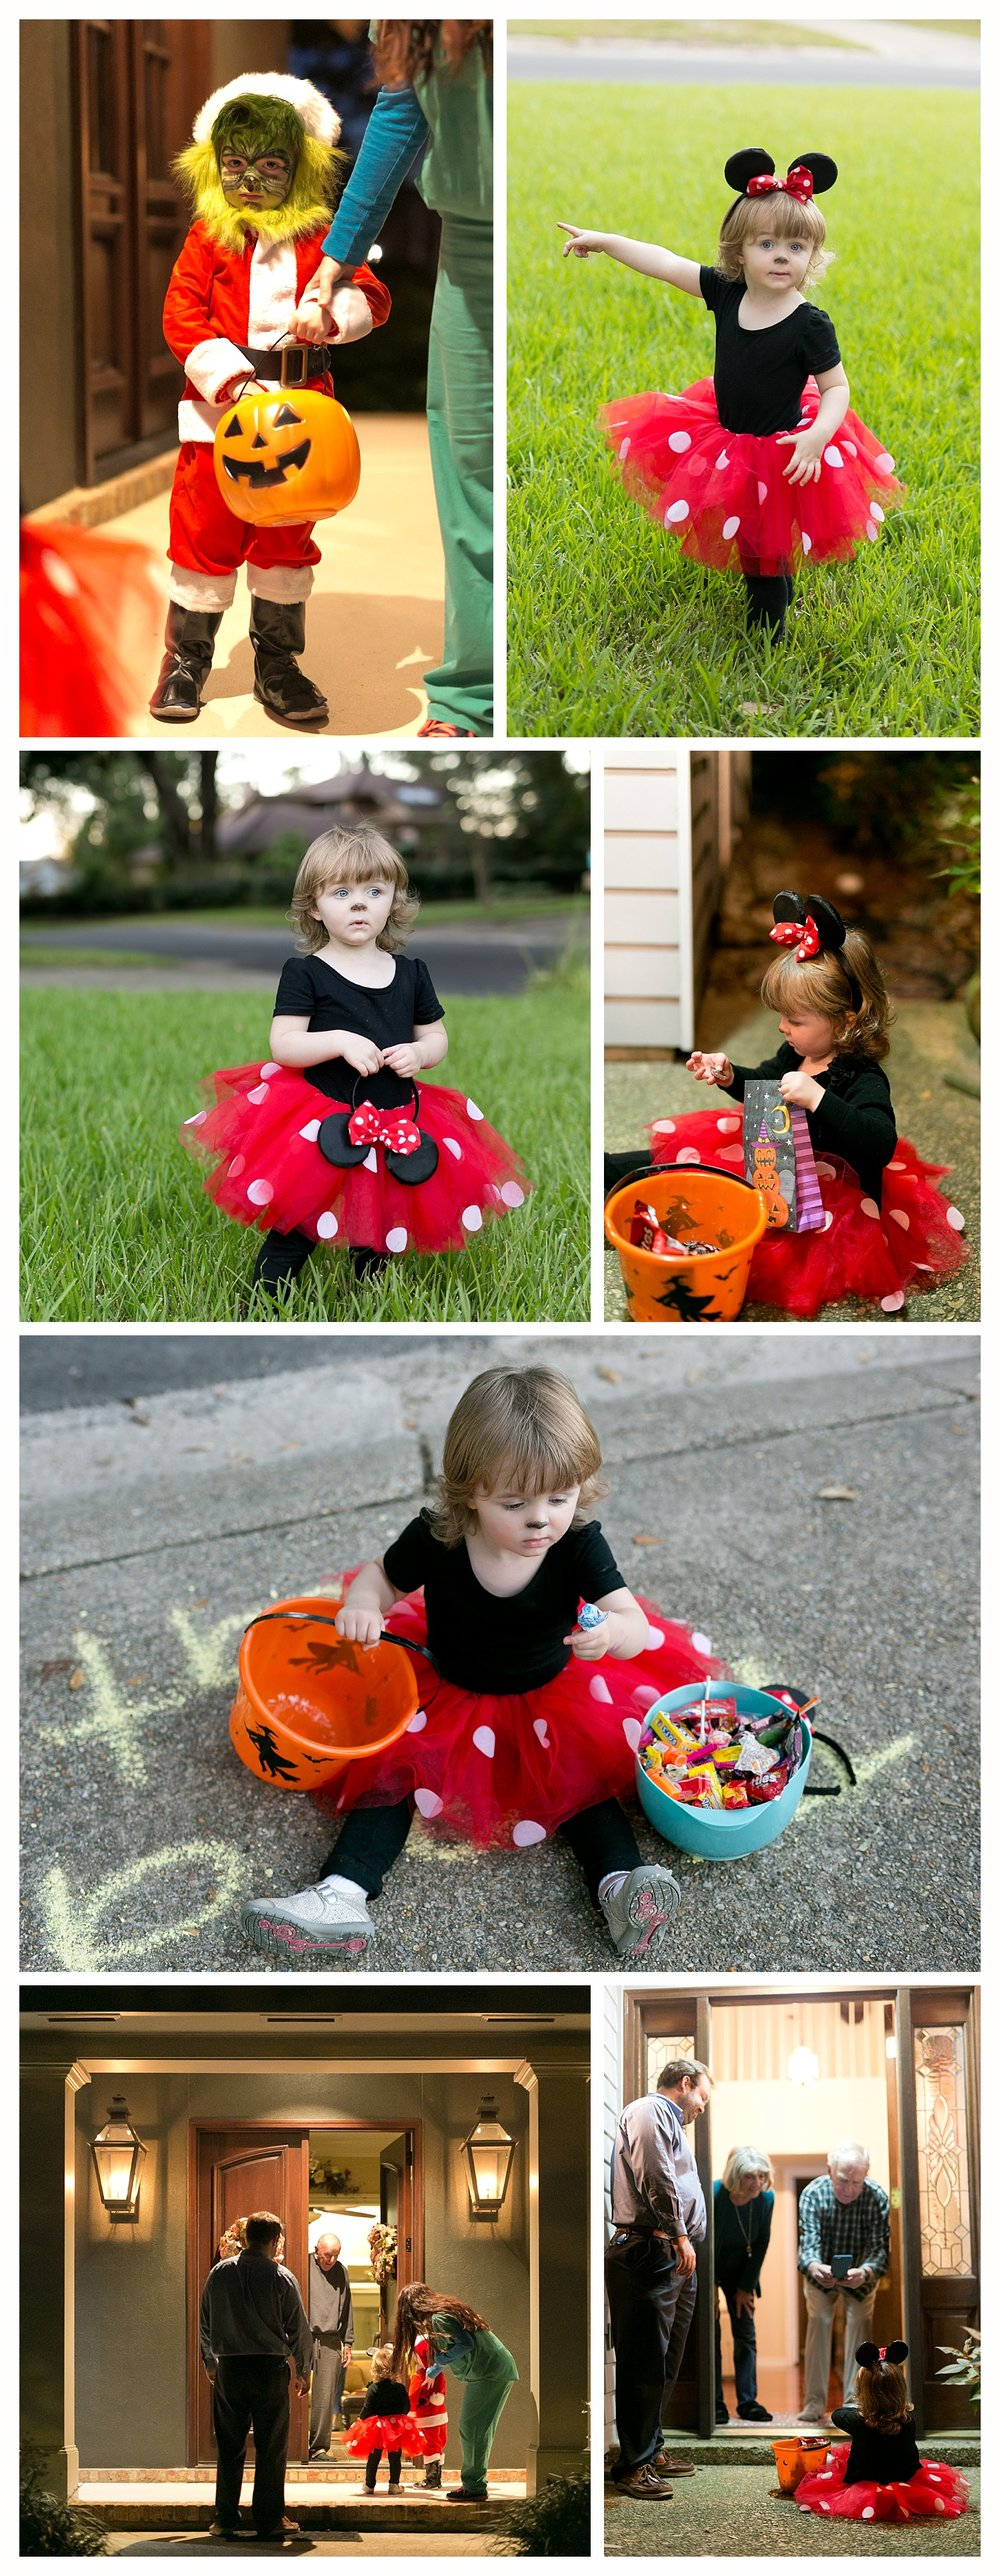 little girl trick-or-treating in Minnie Mouse costume